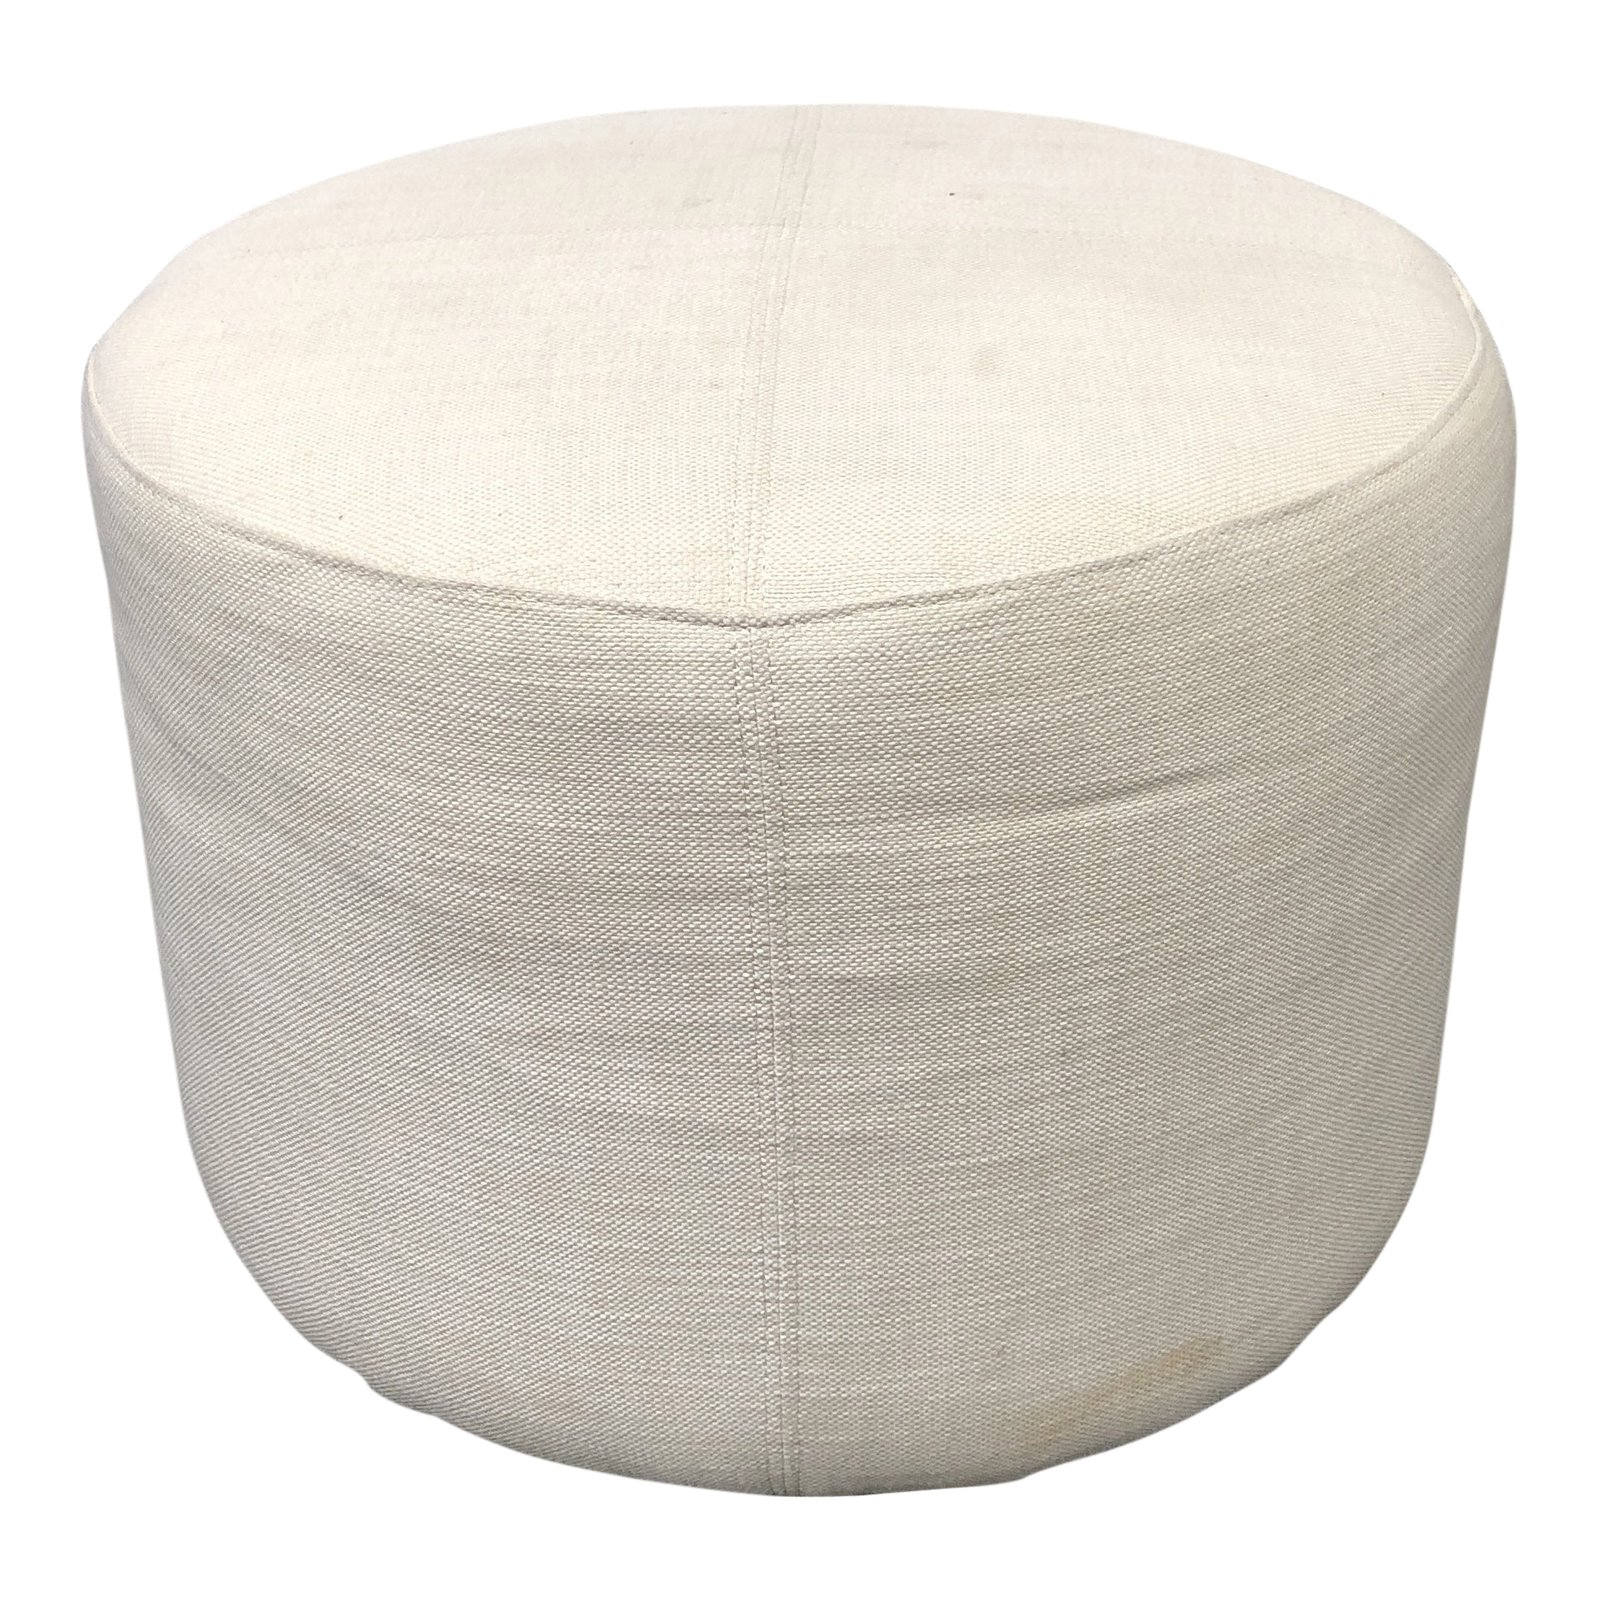 Divani Incanto Group Restoration Hardware Cooper Round Ottoman Original Price 396